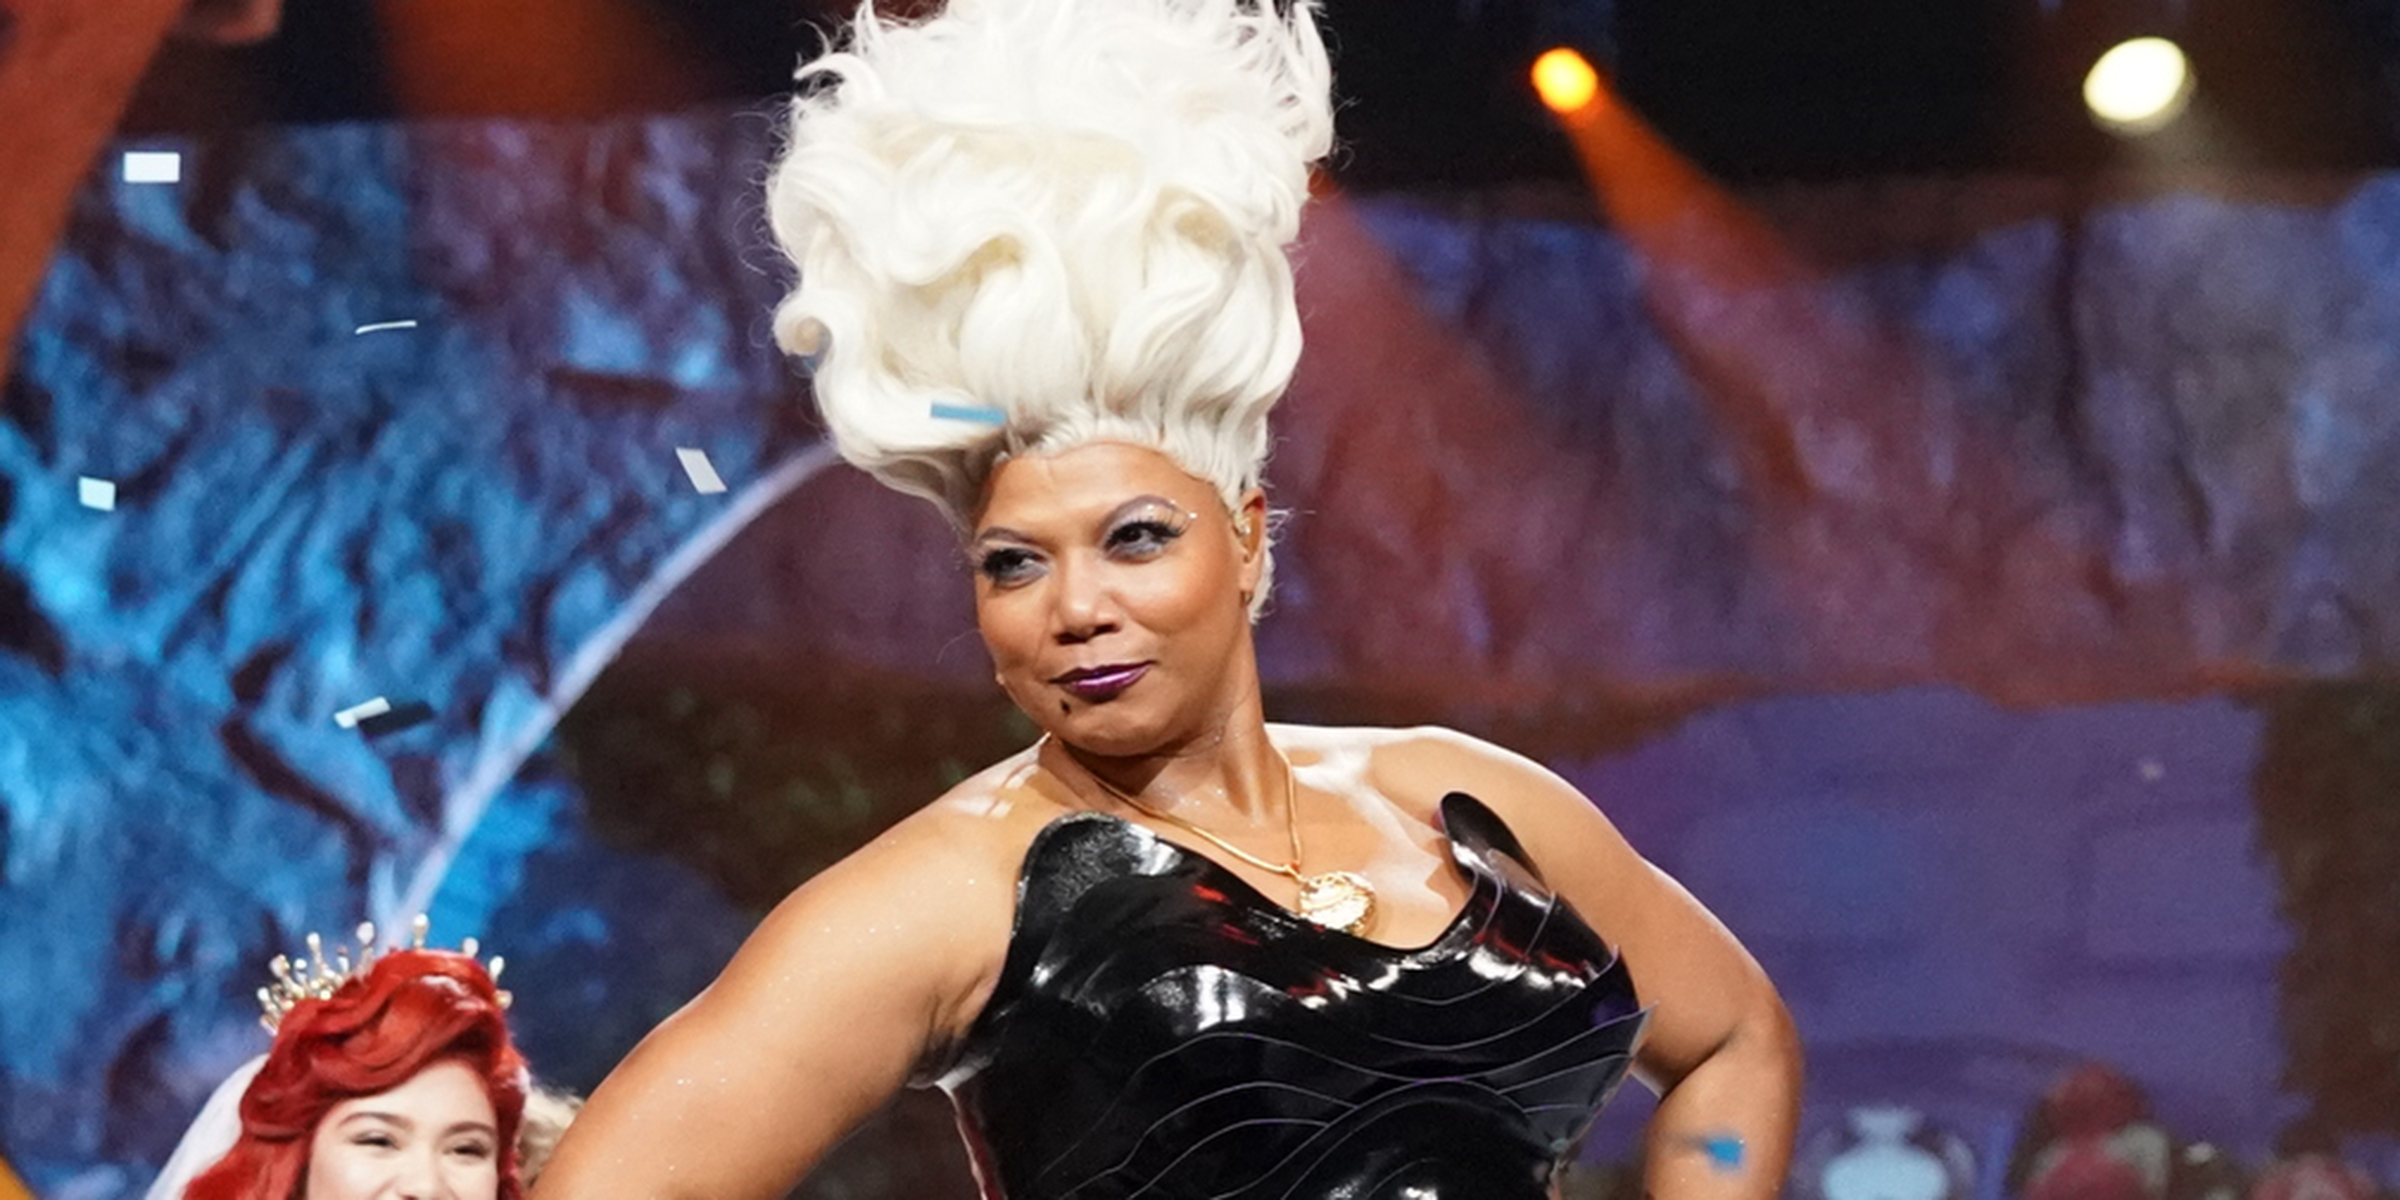 Queen Latifah stole the show as Ursula in 'The Little Mermaid Live!'